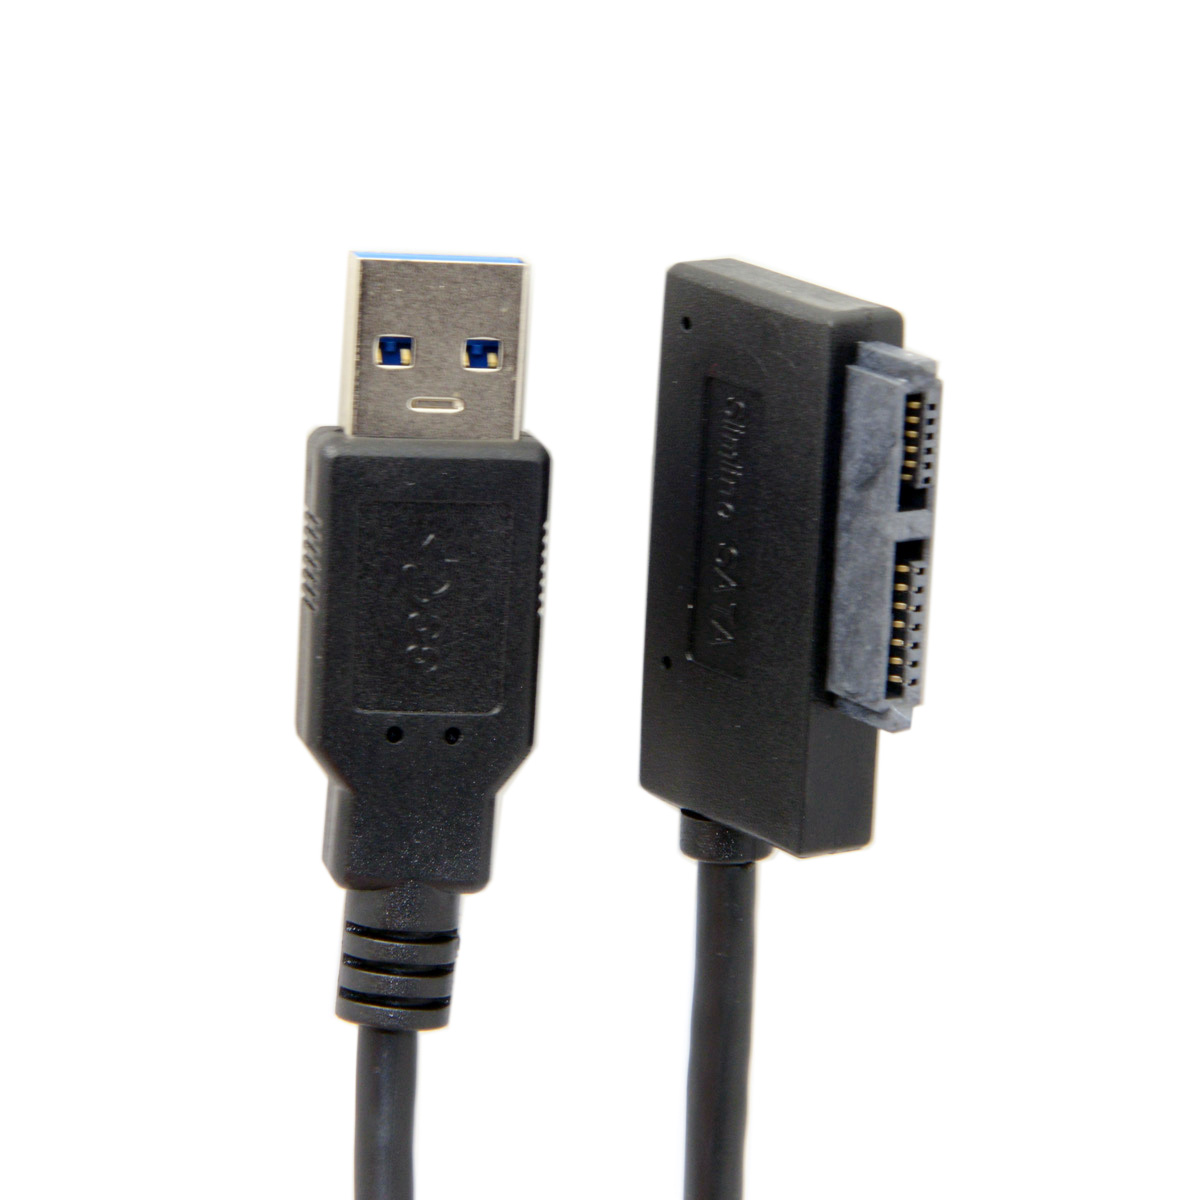 10pcs/lot  USB 3.0 to 7+6 13pin Slimline Sata Adapter Cable for Laptop Cd DVD Rom Optical Drive